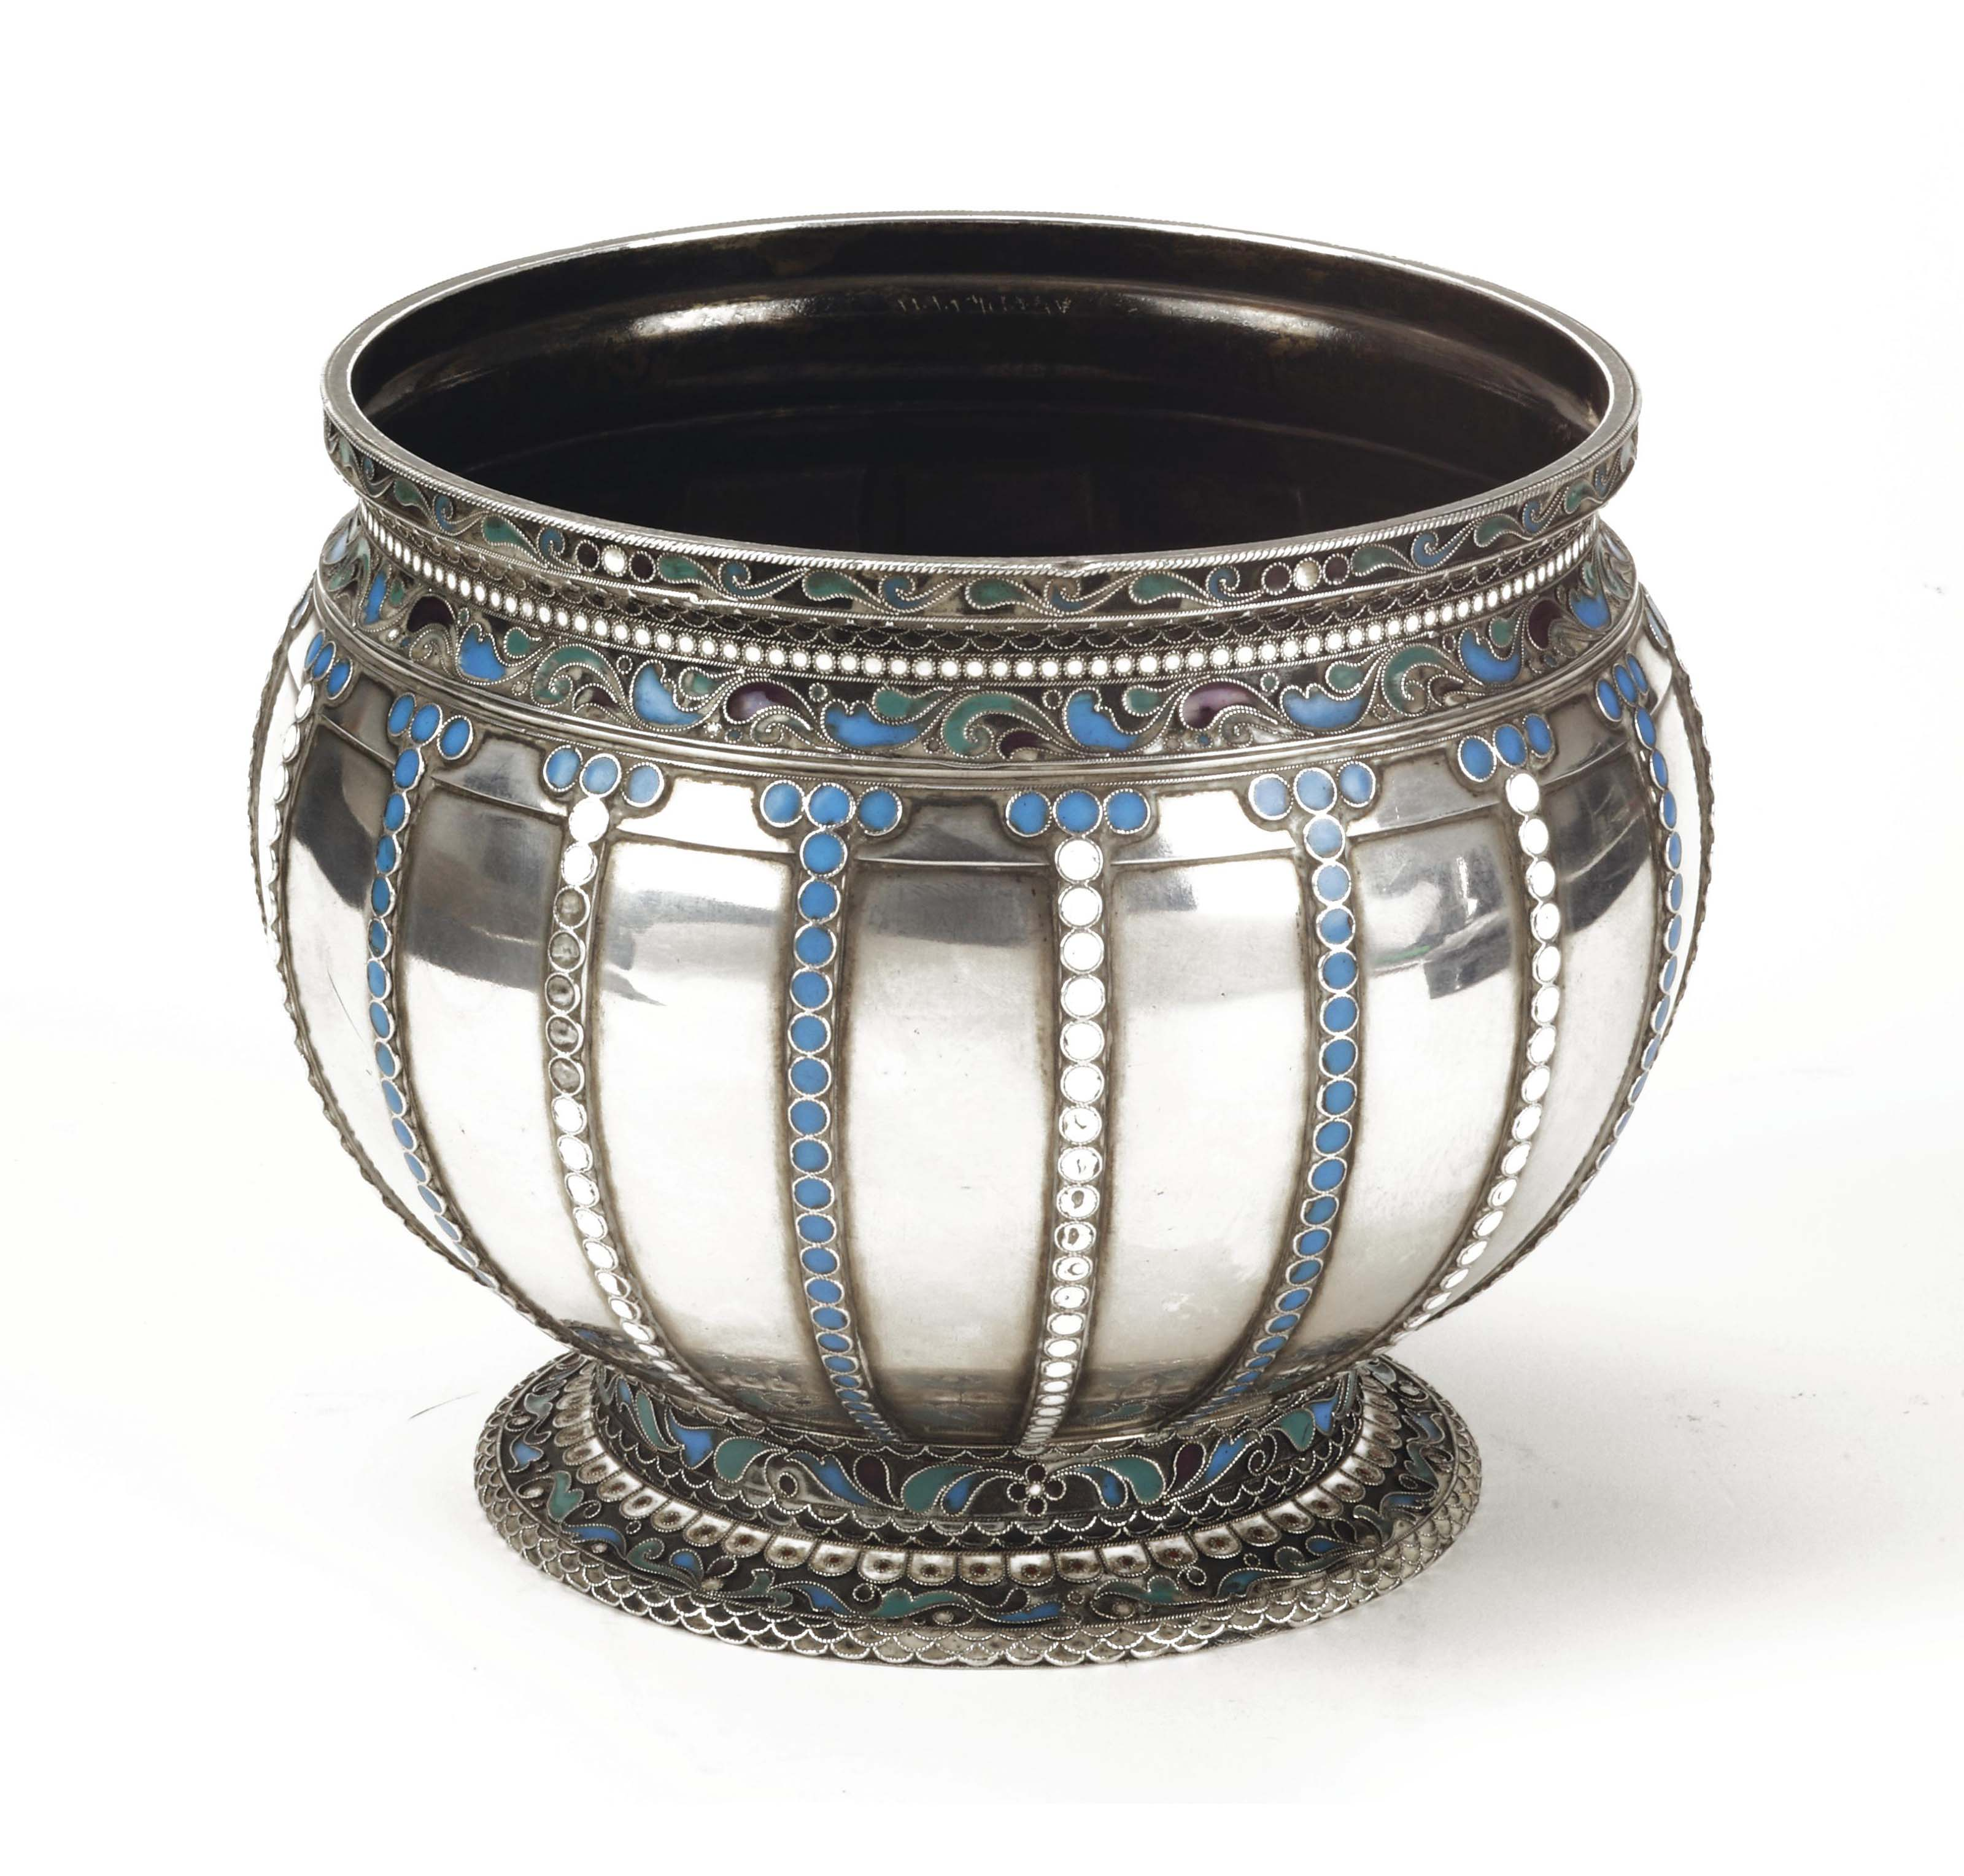 A Russian silver vase with applied filigrain and cloisonne enamel